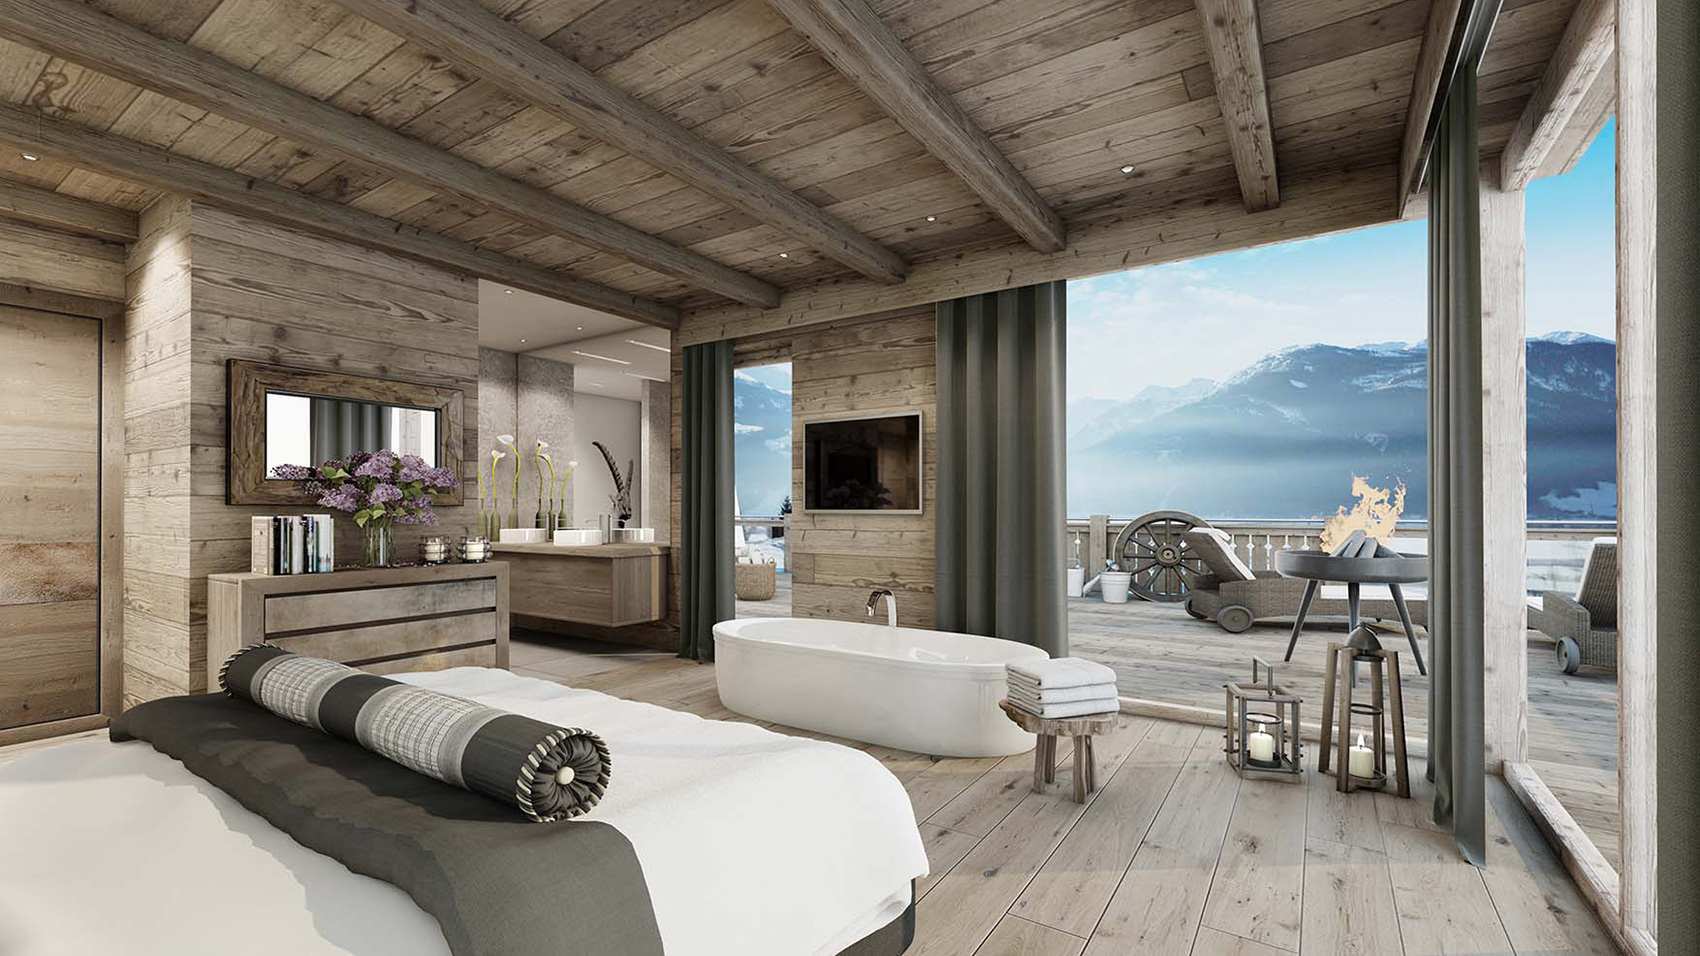 The Hunting Lodge Chalet Chalet, Austria